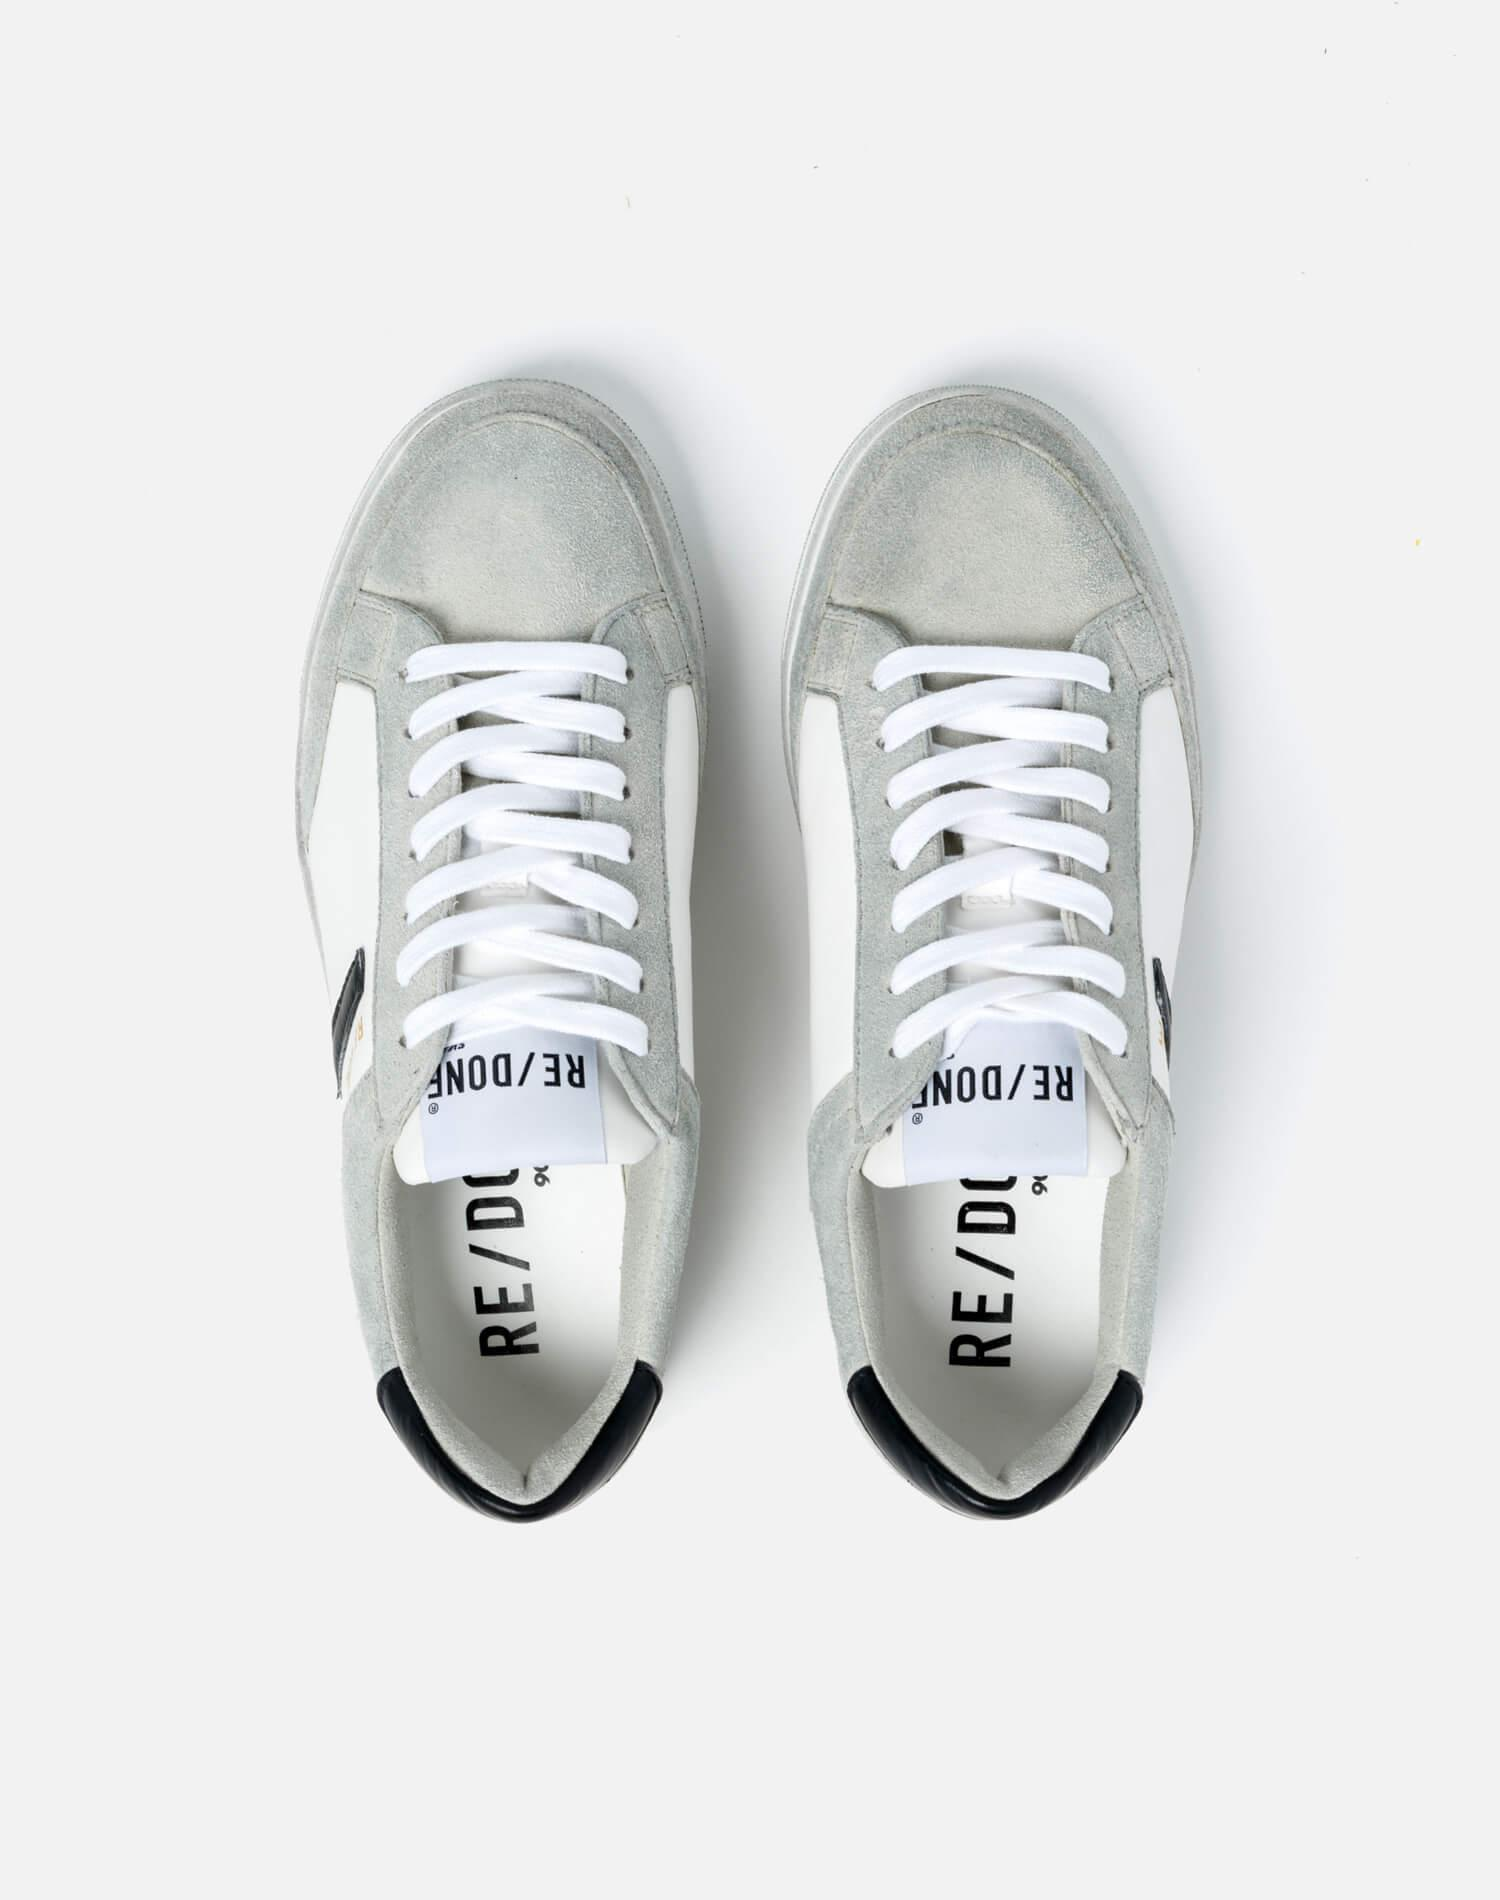 90s Sustainable Skate Shoe - White and Black 2